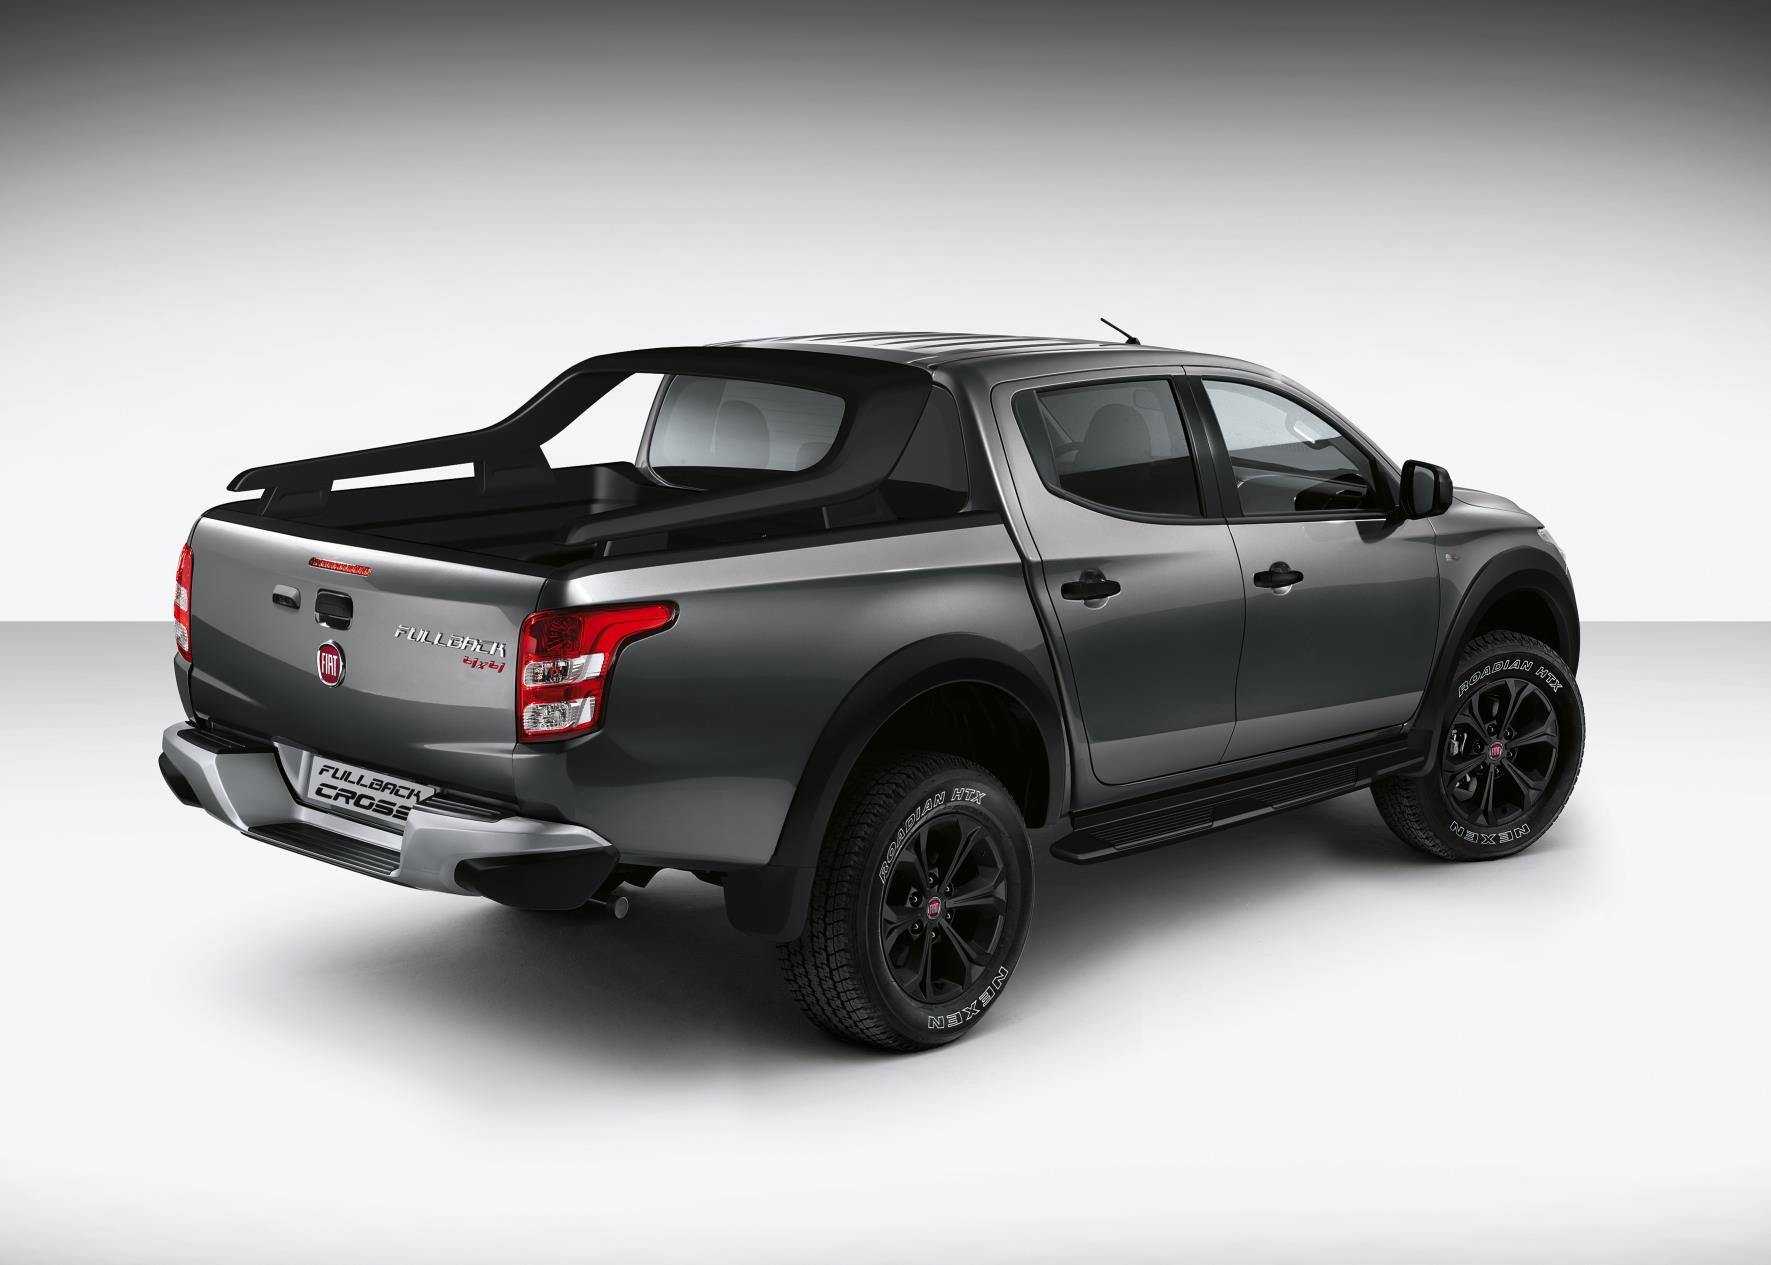 fiat fullback cross pick up targets lifestyle business vans. Black Bedroom Furniture Sets. Home Design Ideas